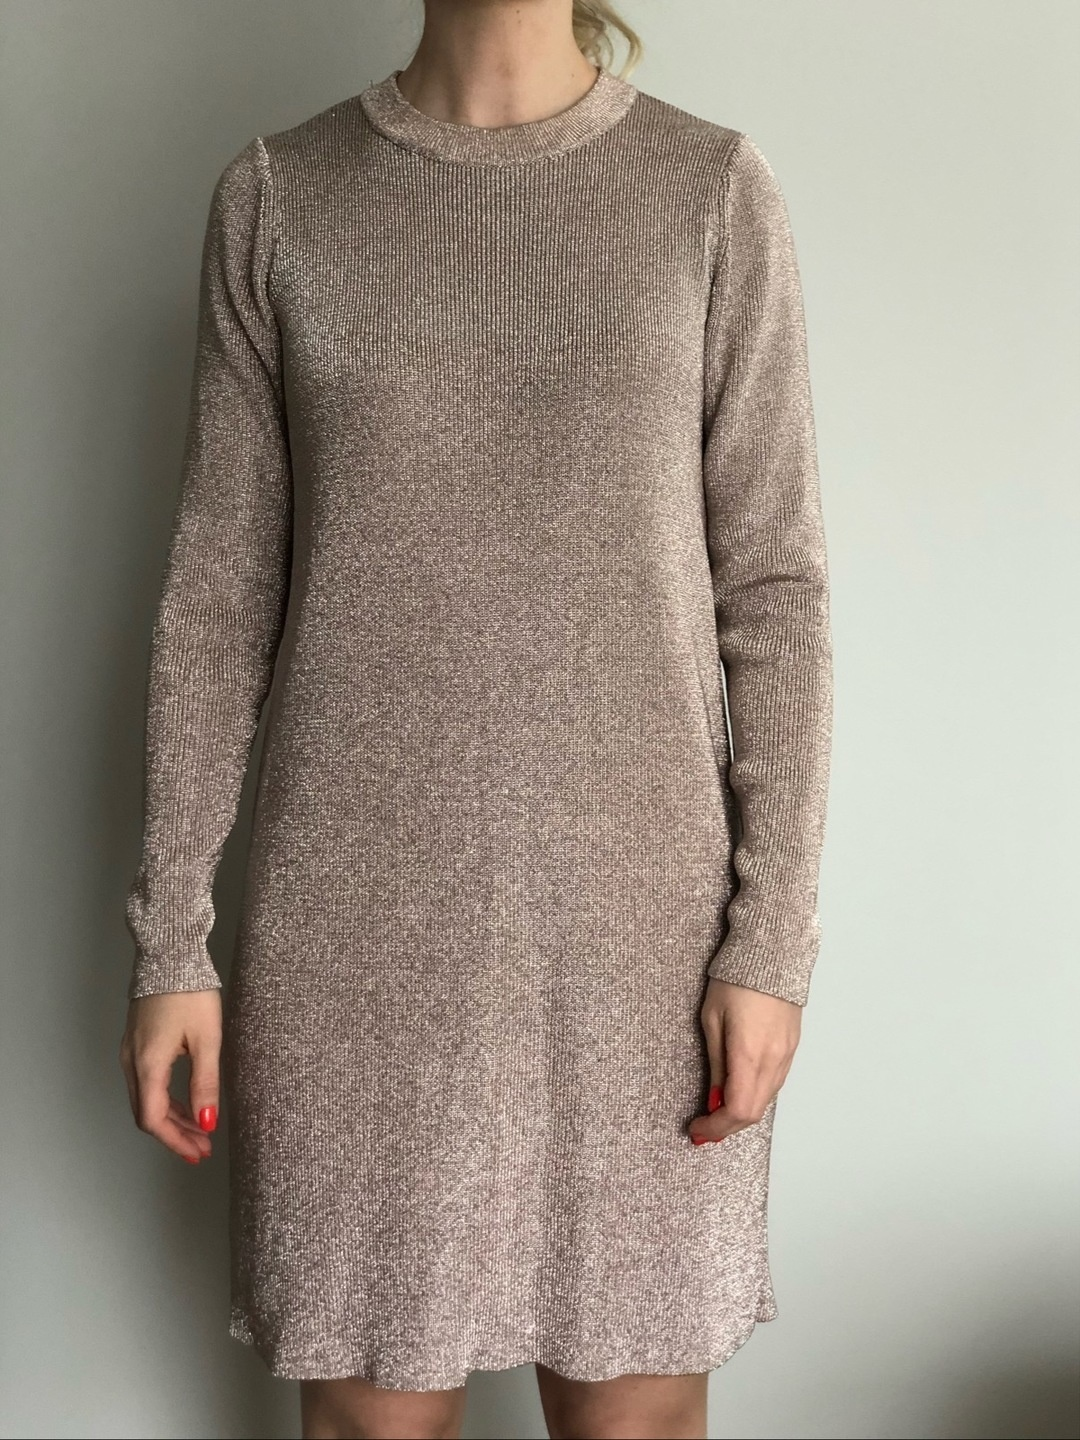 Women's dresses - COS photo 1